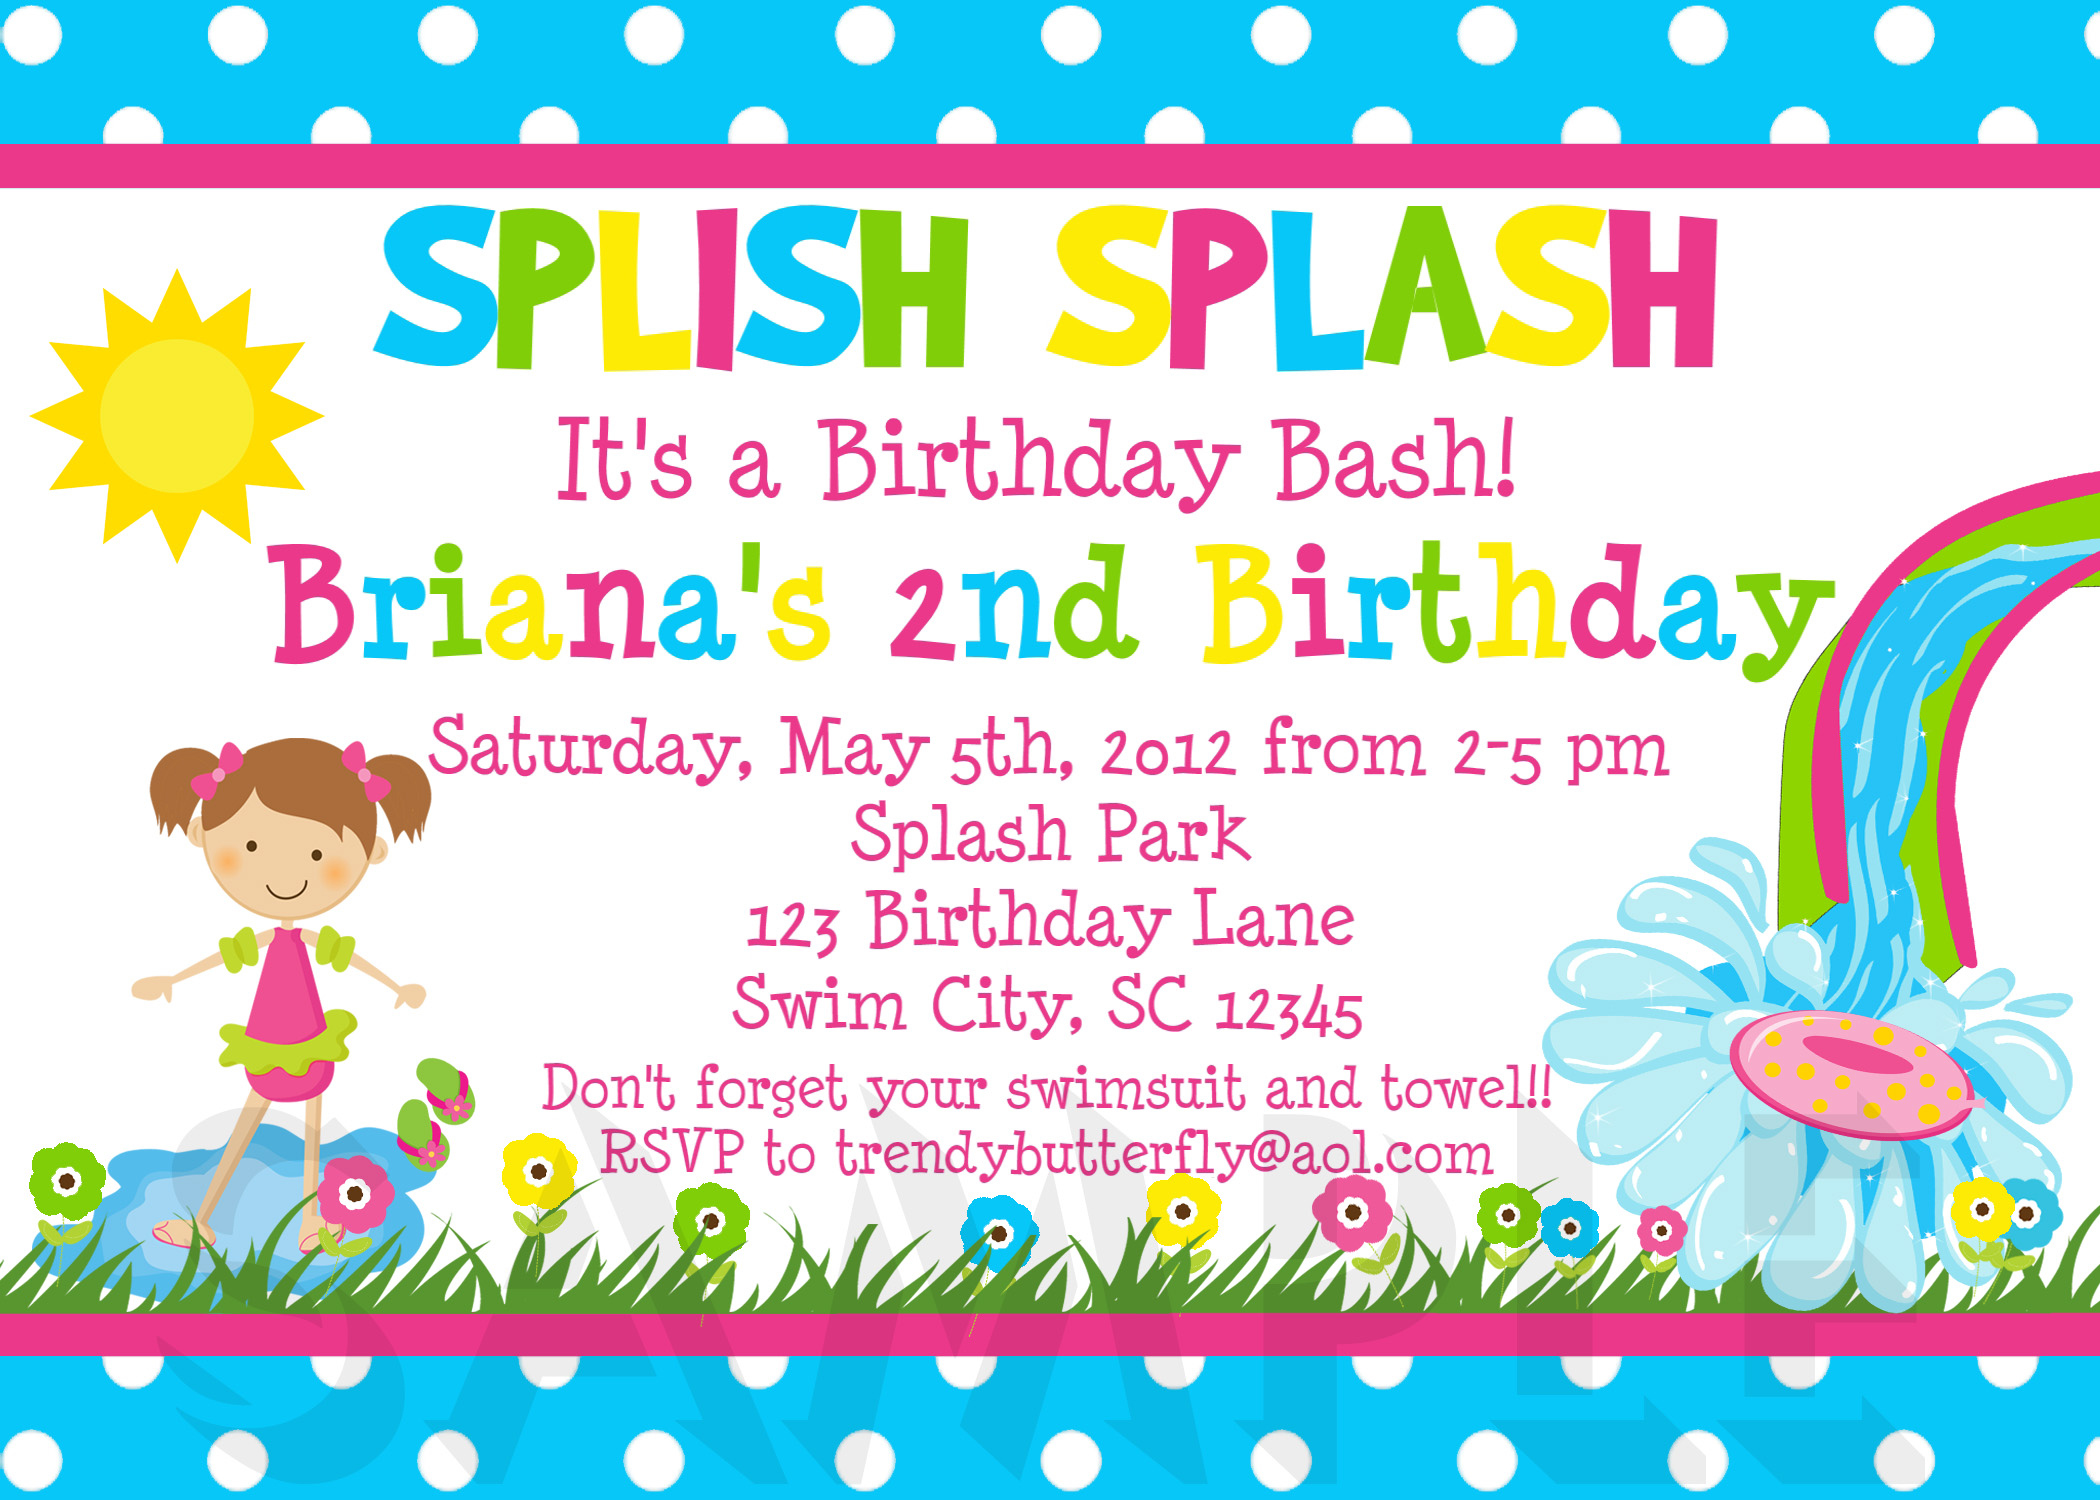 kids birthday party invitation message ; pool-party-invitation-message-birthday-invites-charming-kids-birthday-party-invitations-design